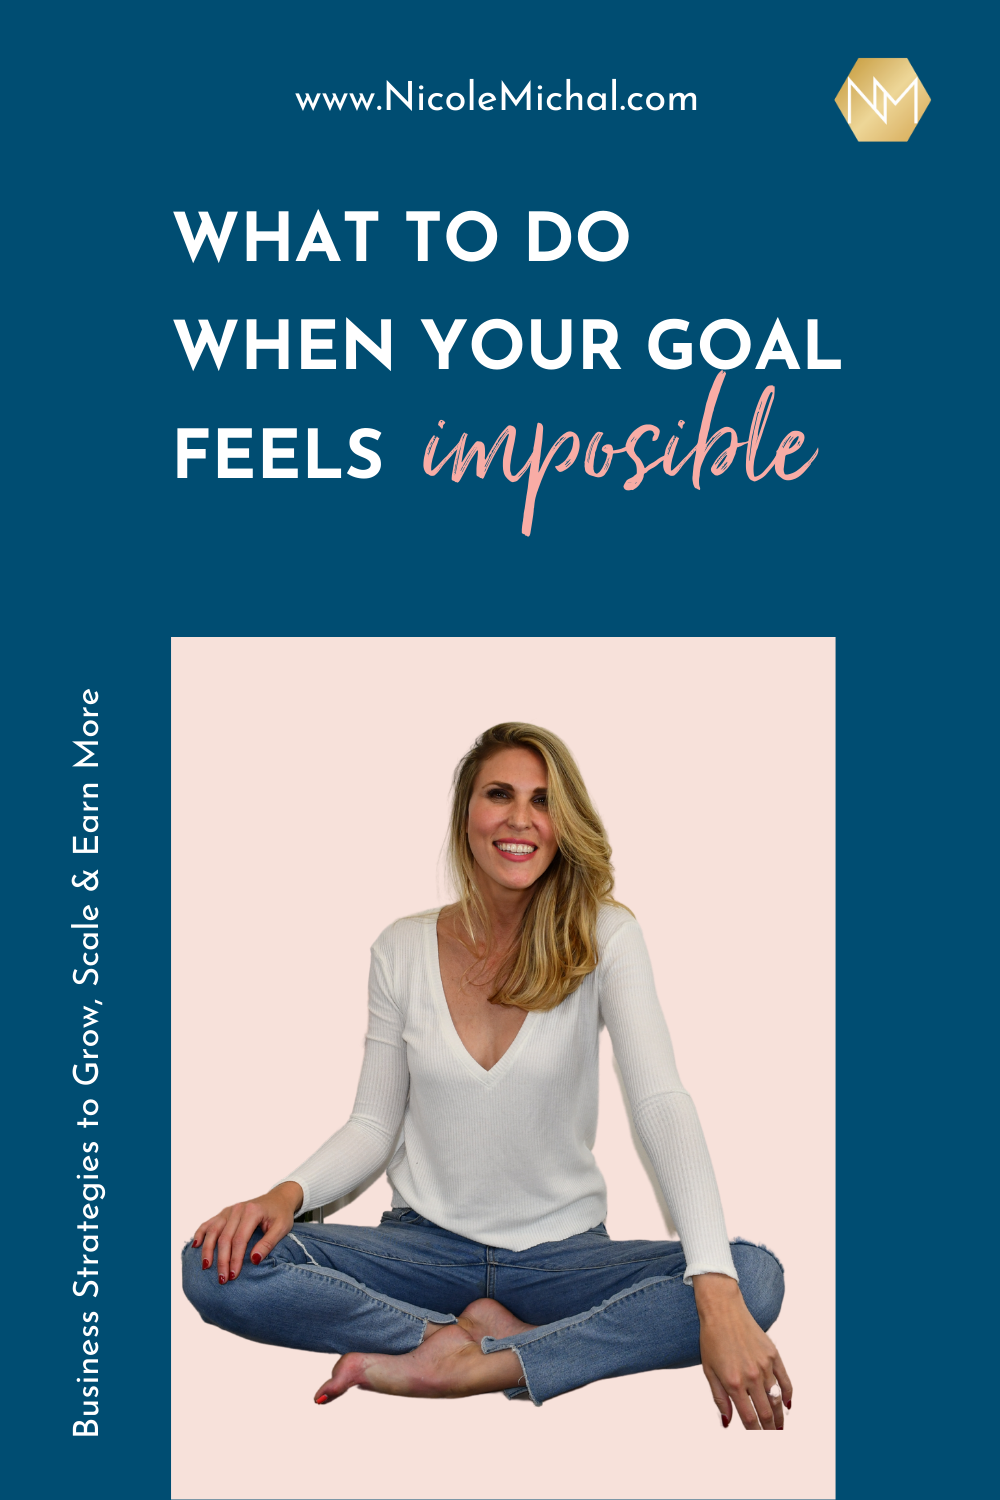 What To Do When Your Goal Feels impossible